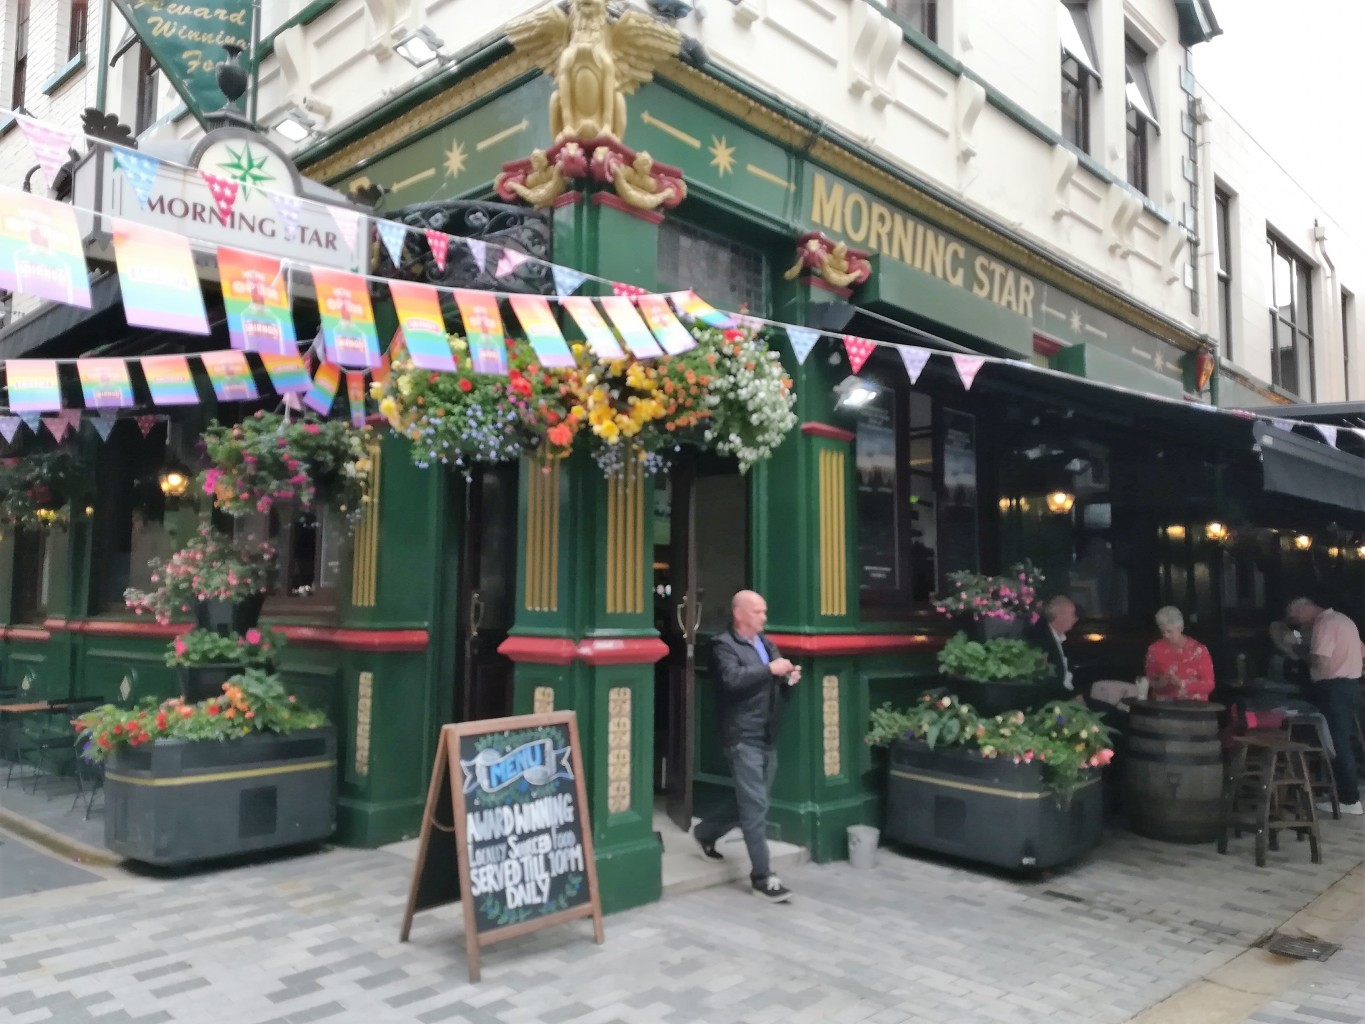 traditional pubs in Belfast Morning Star